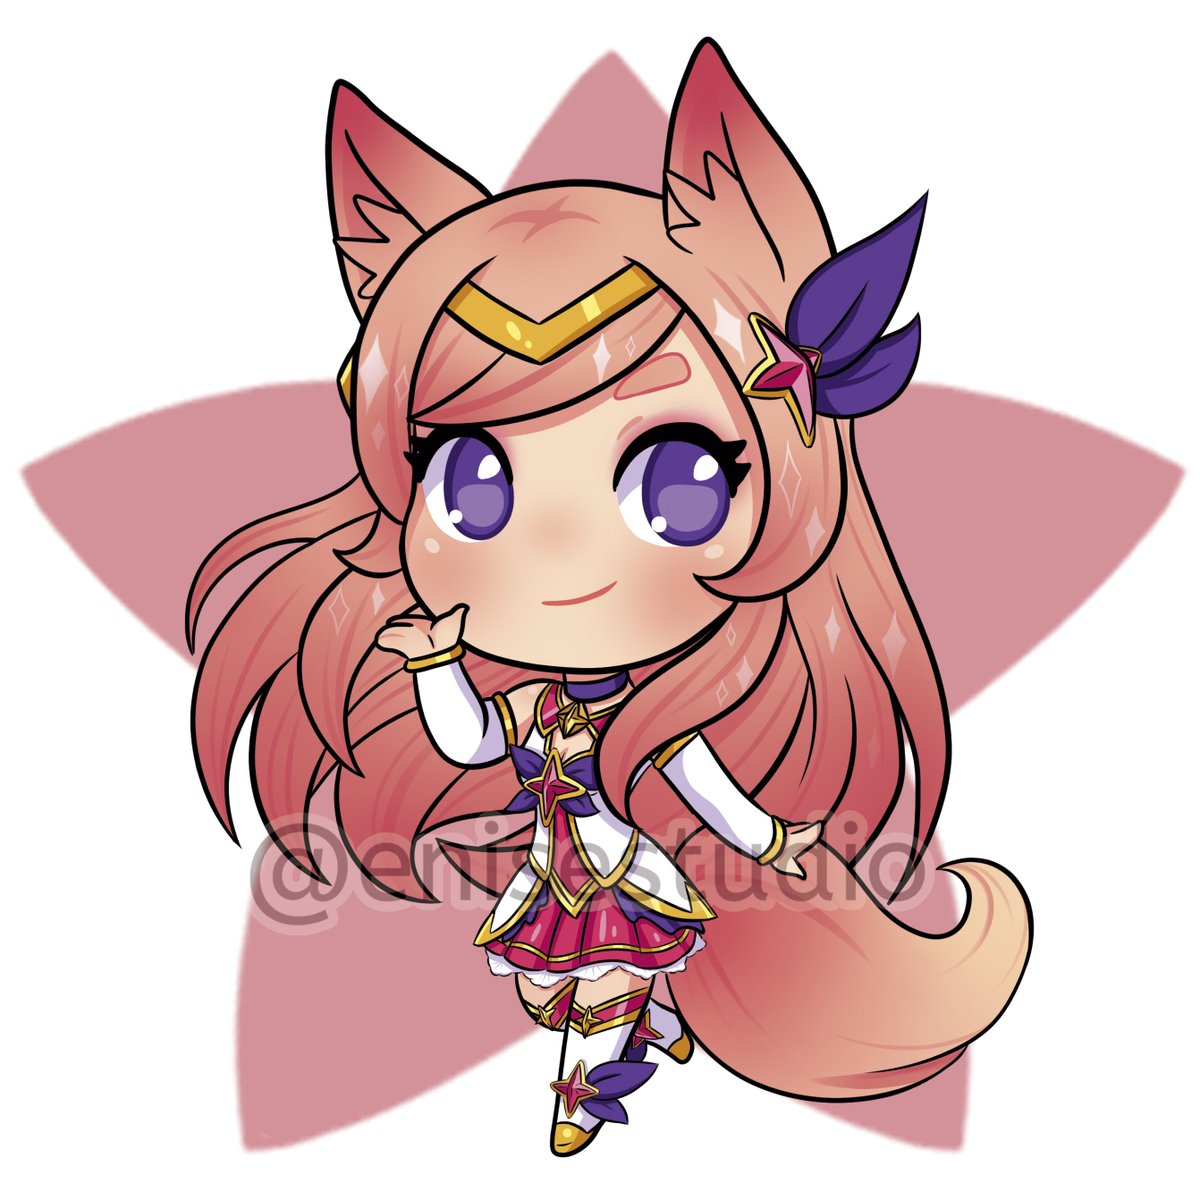 "K/DA Enise✨ on Twitter: ""🌟Chibi Star Guardian Ahri🌟 🔁❤ #Chibi #Cute  #DigitalArt #LeagueOfLegends #ArtofLegends #Ahri #Starguardian  #StarguardianAhri ..."